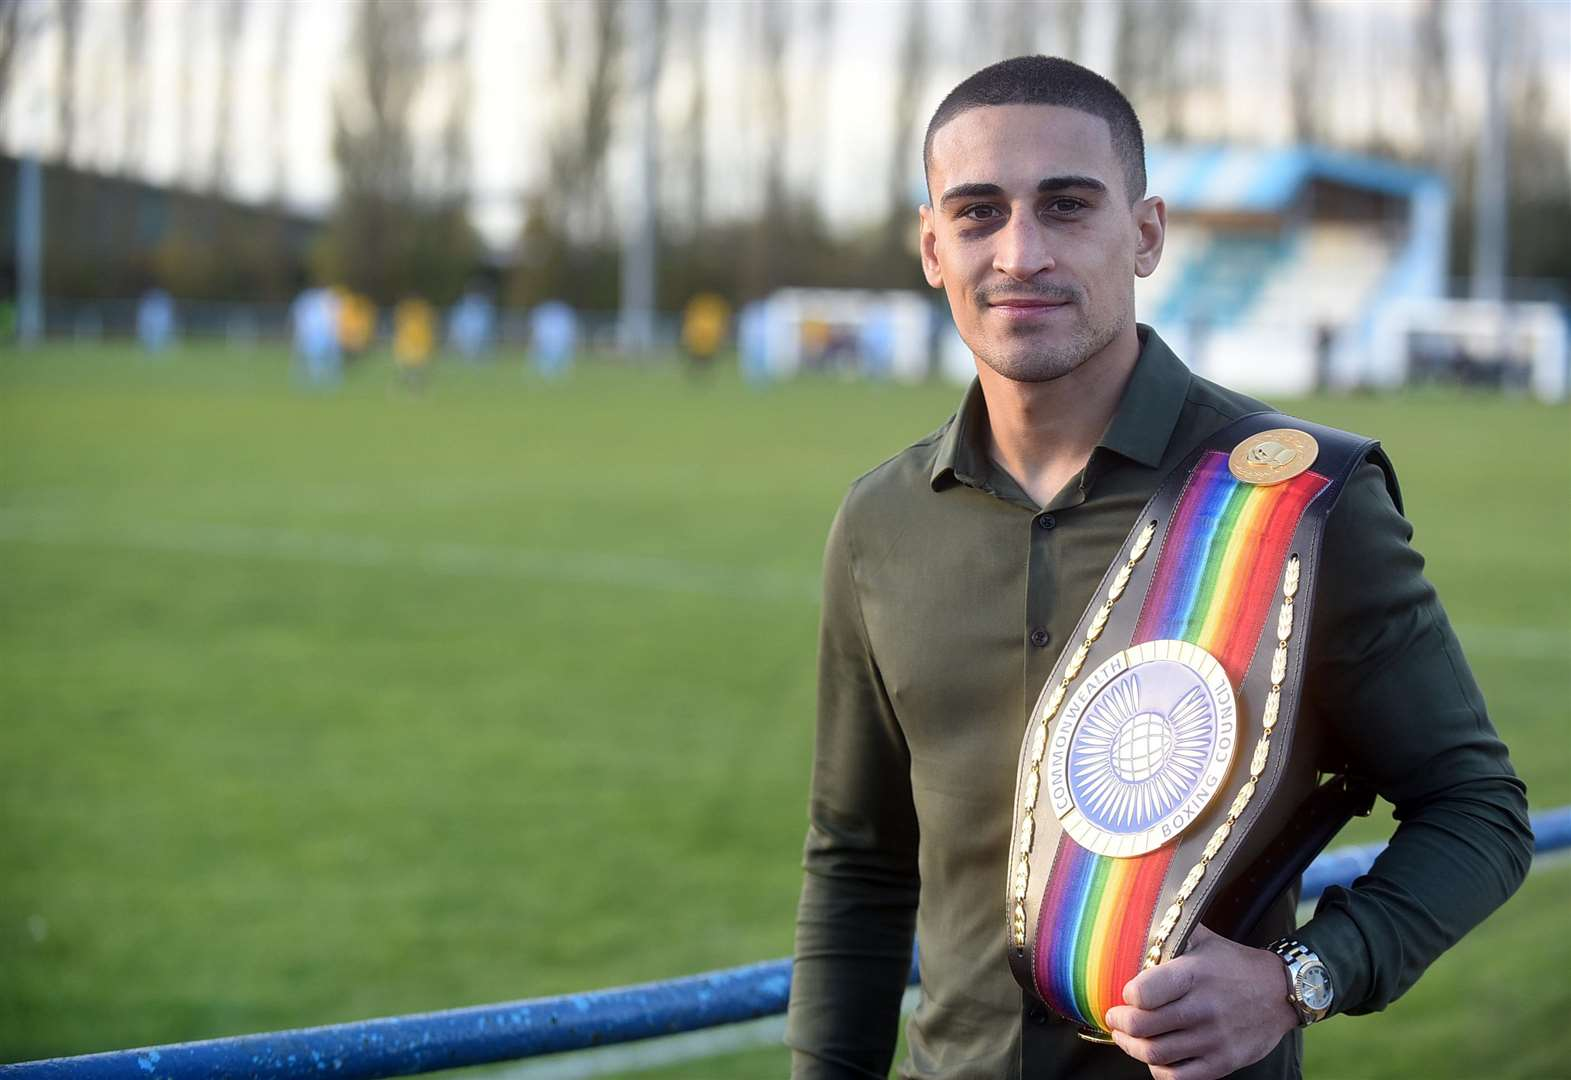 Chatteris boxer Jordan Gill to face Mexican test in latest title bout